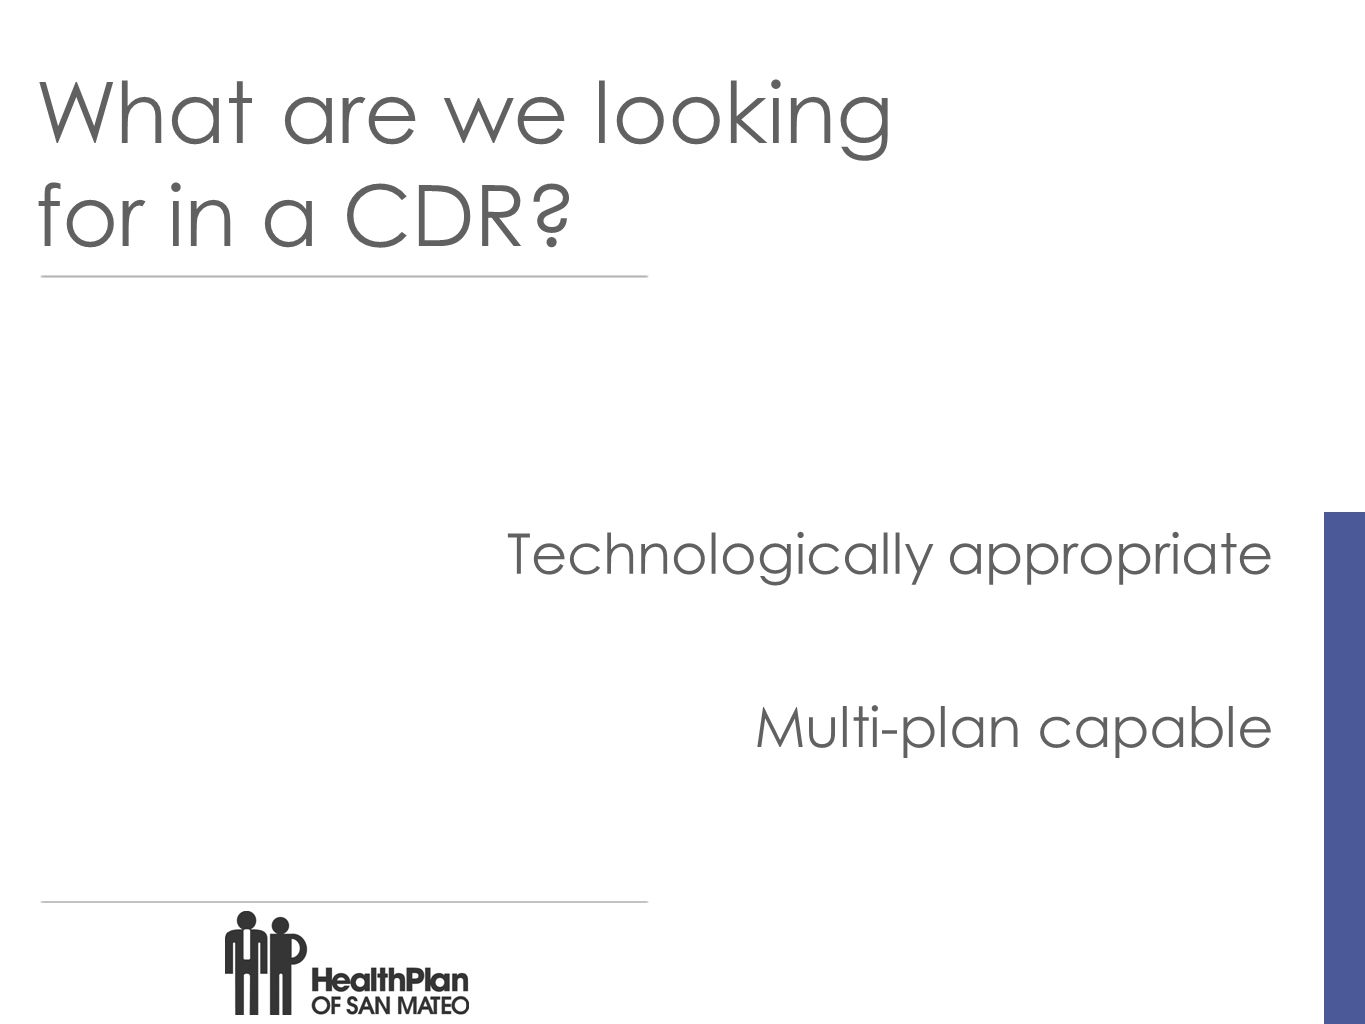 What are we looking for in a CDR Technologically appropriate Multi-plan capable